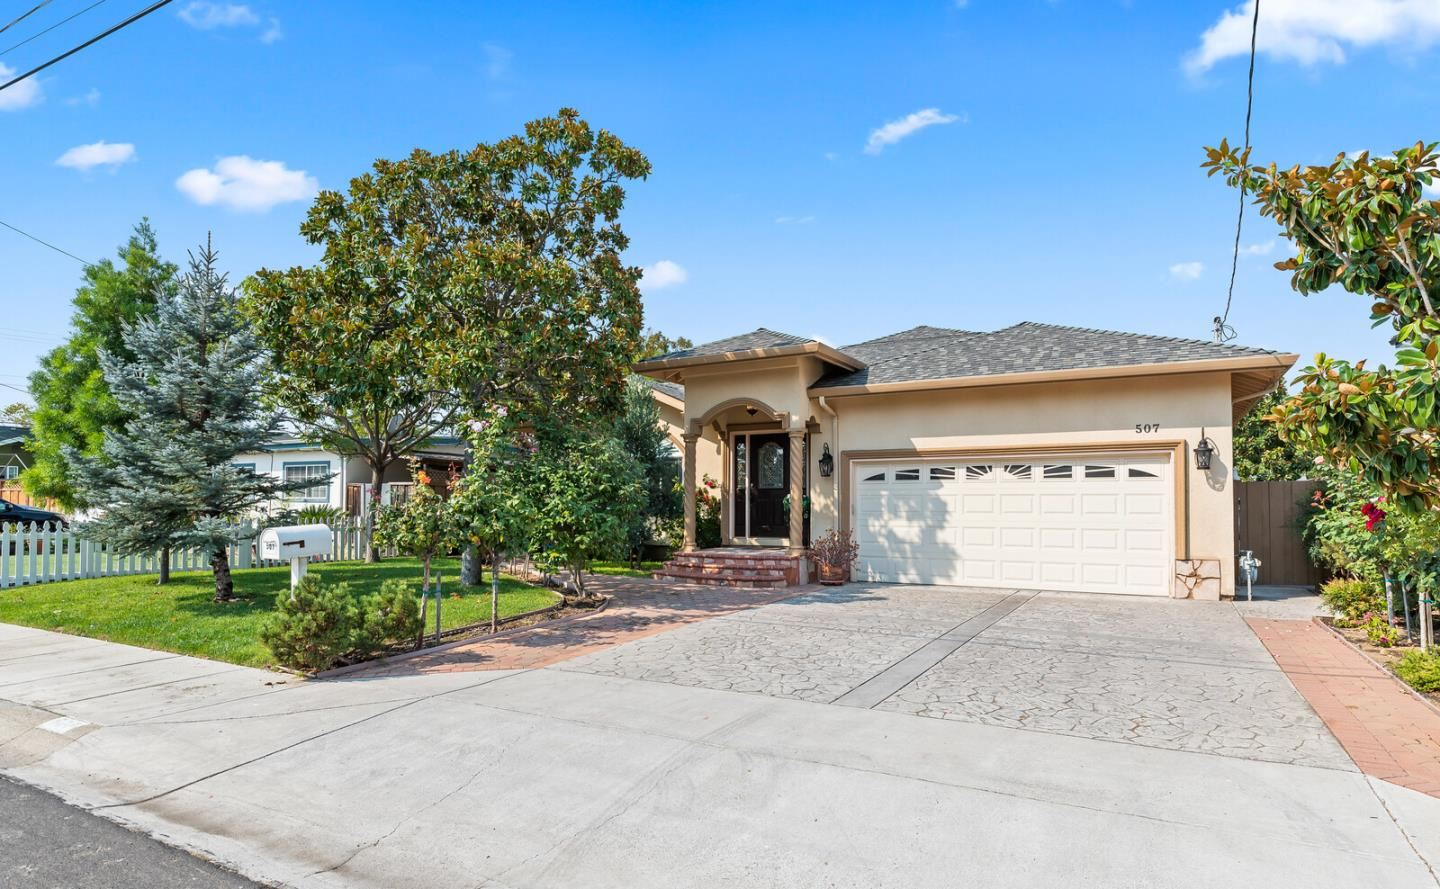 Photo for 507 Kenneth ST, CAMPBELL, CA 95008 (MLS # ML81808885)